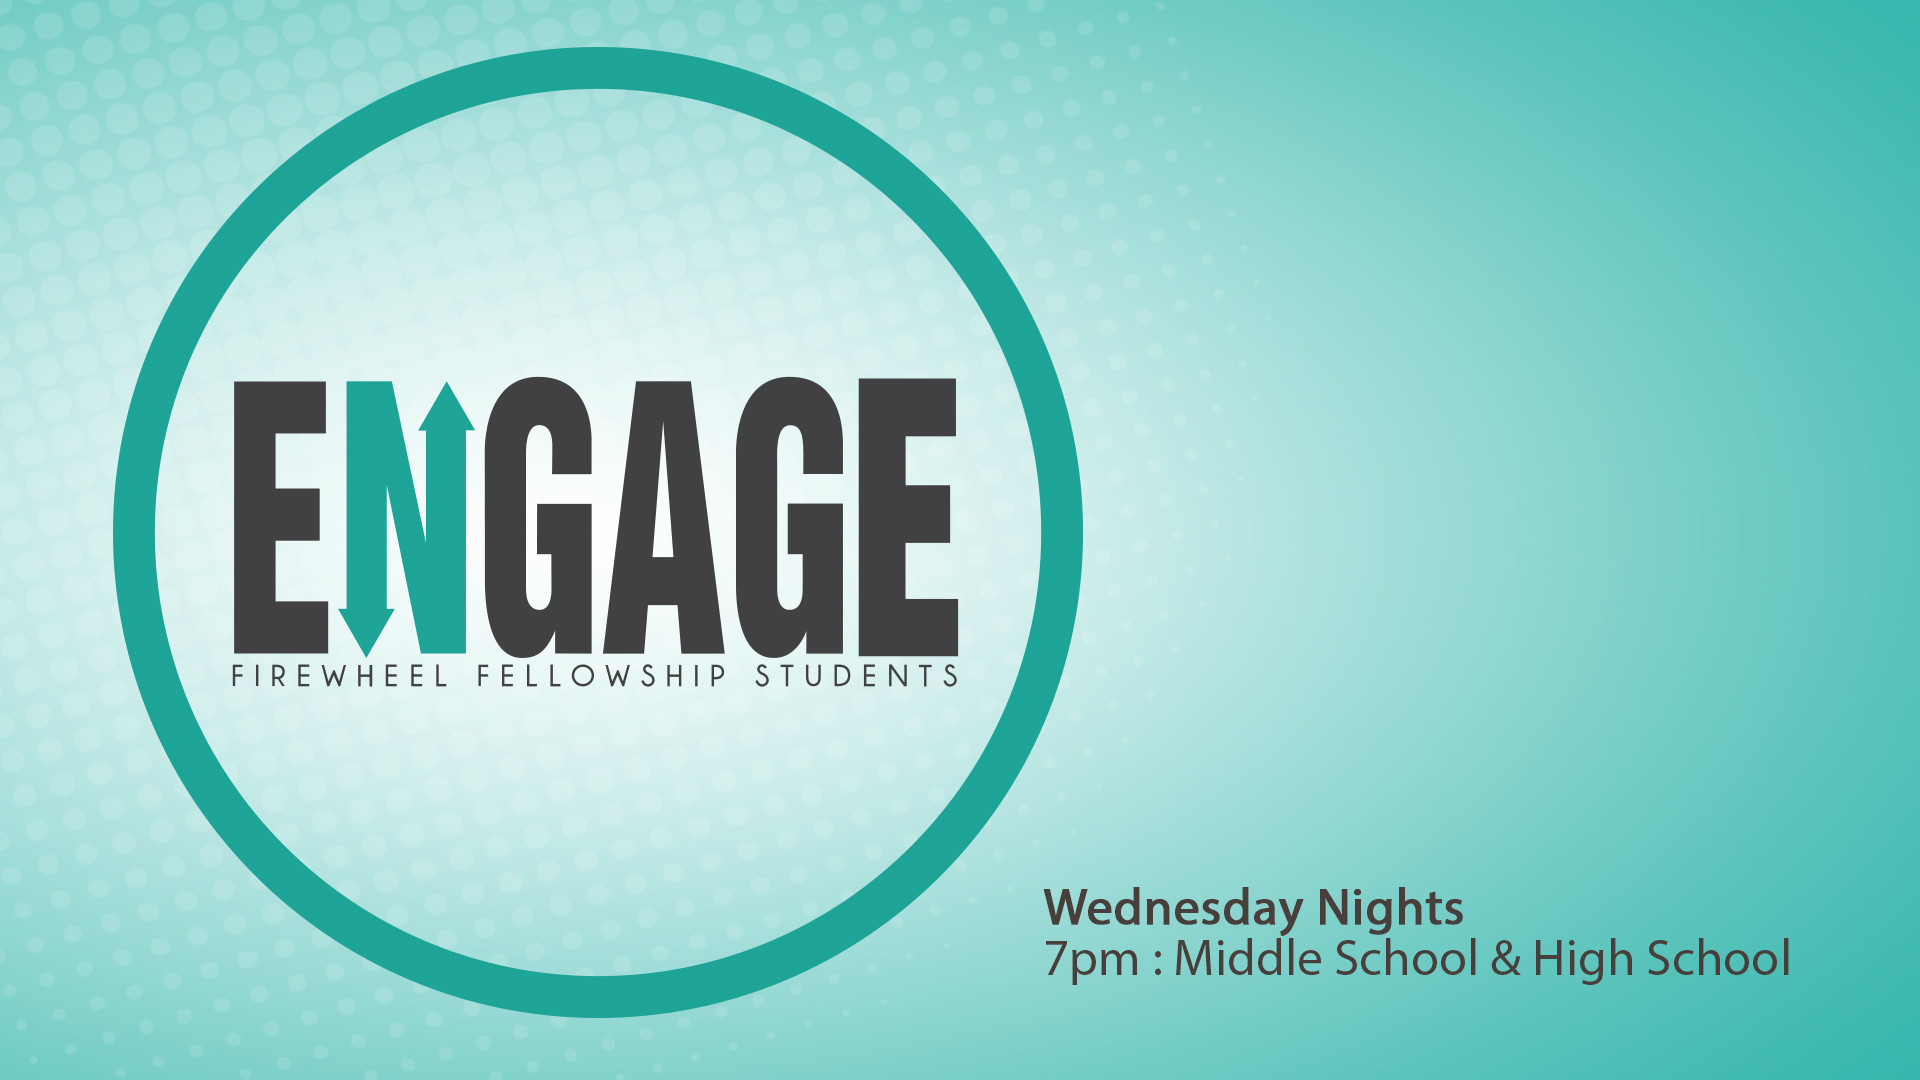 Engage Wednesday Night image